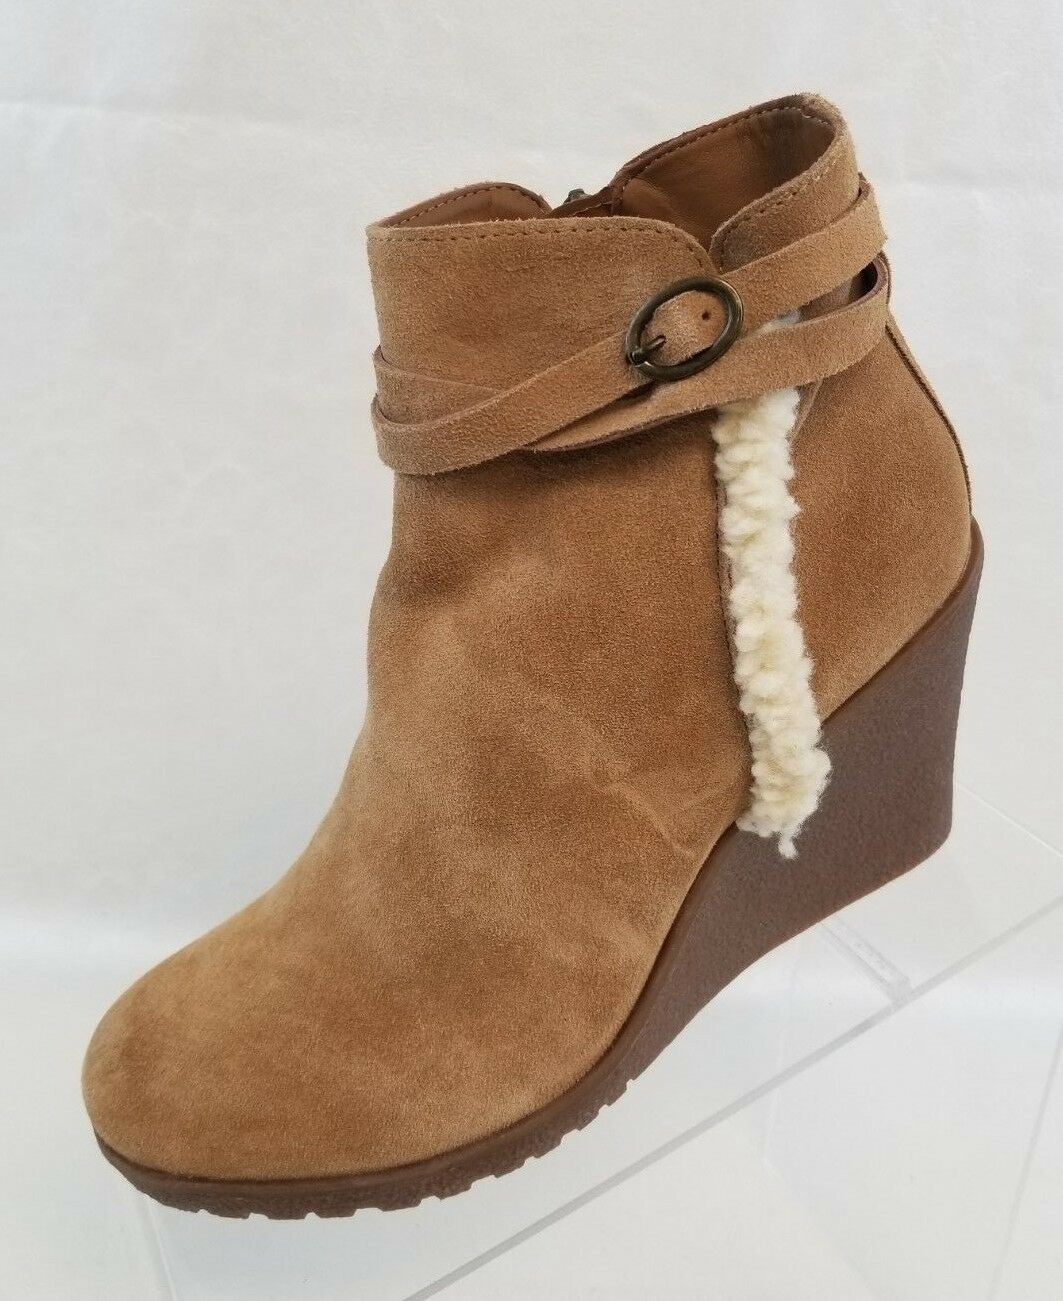 Bjorndal Bjorndal Bjorndal Ankle Boots Wedge Amy Zip Tan Leather Pull On Womens shoes Size 8 NEW 903bec